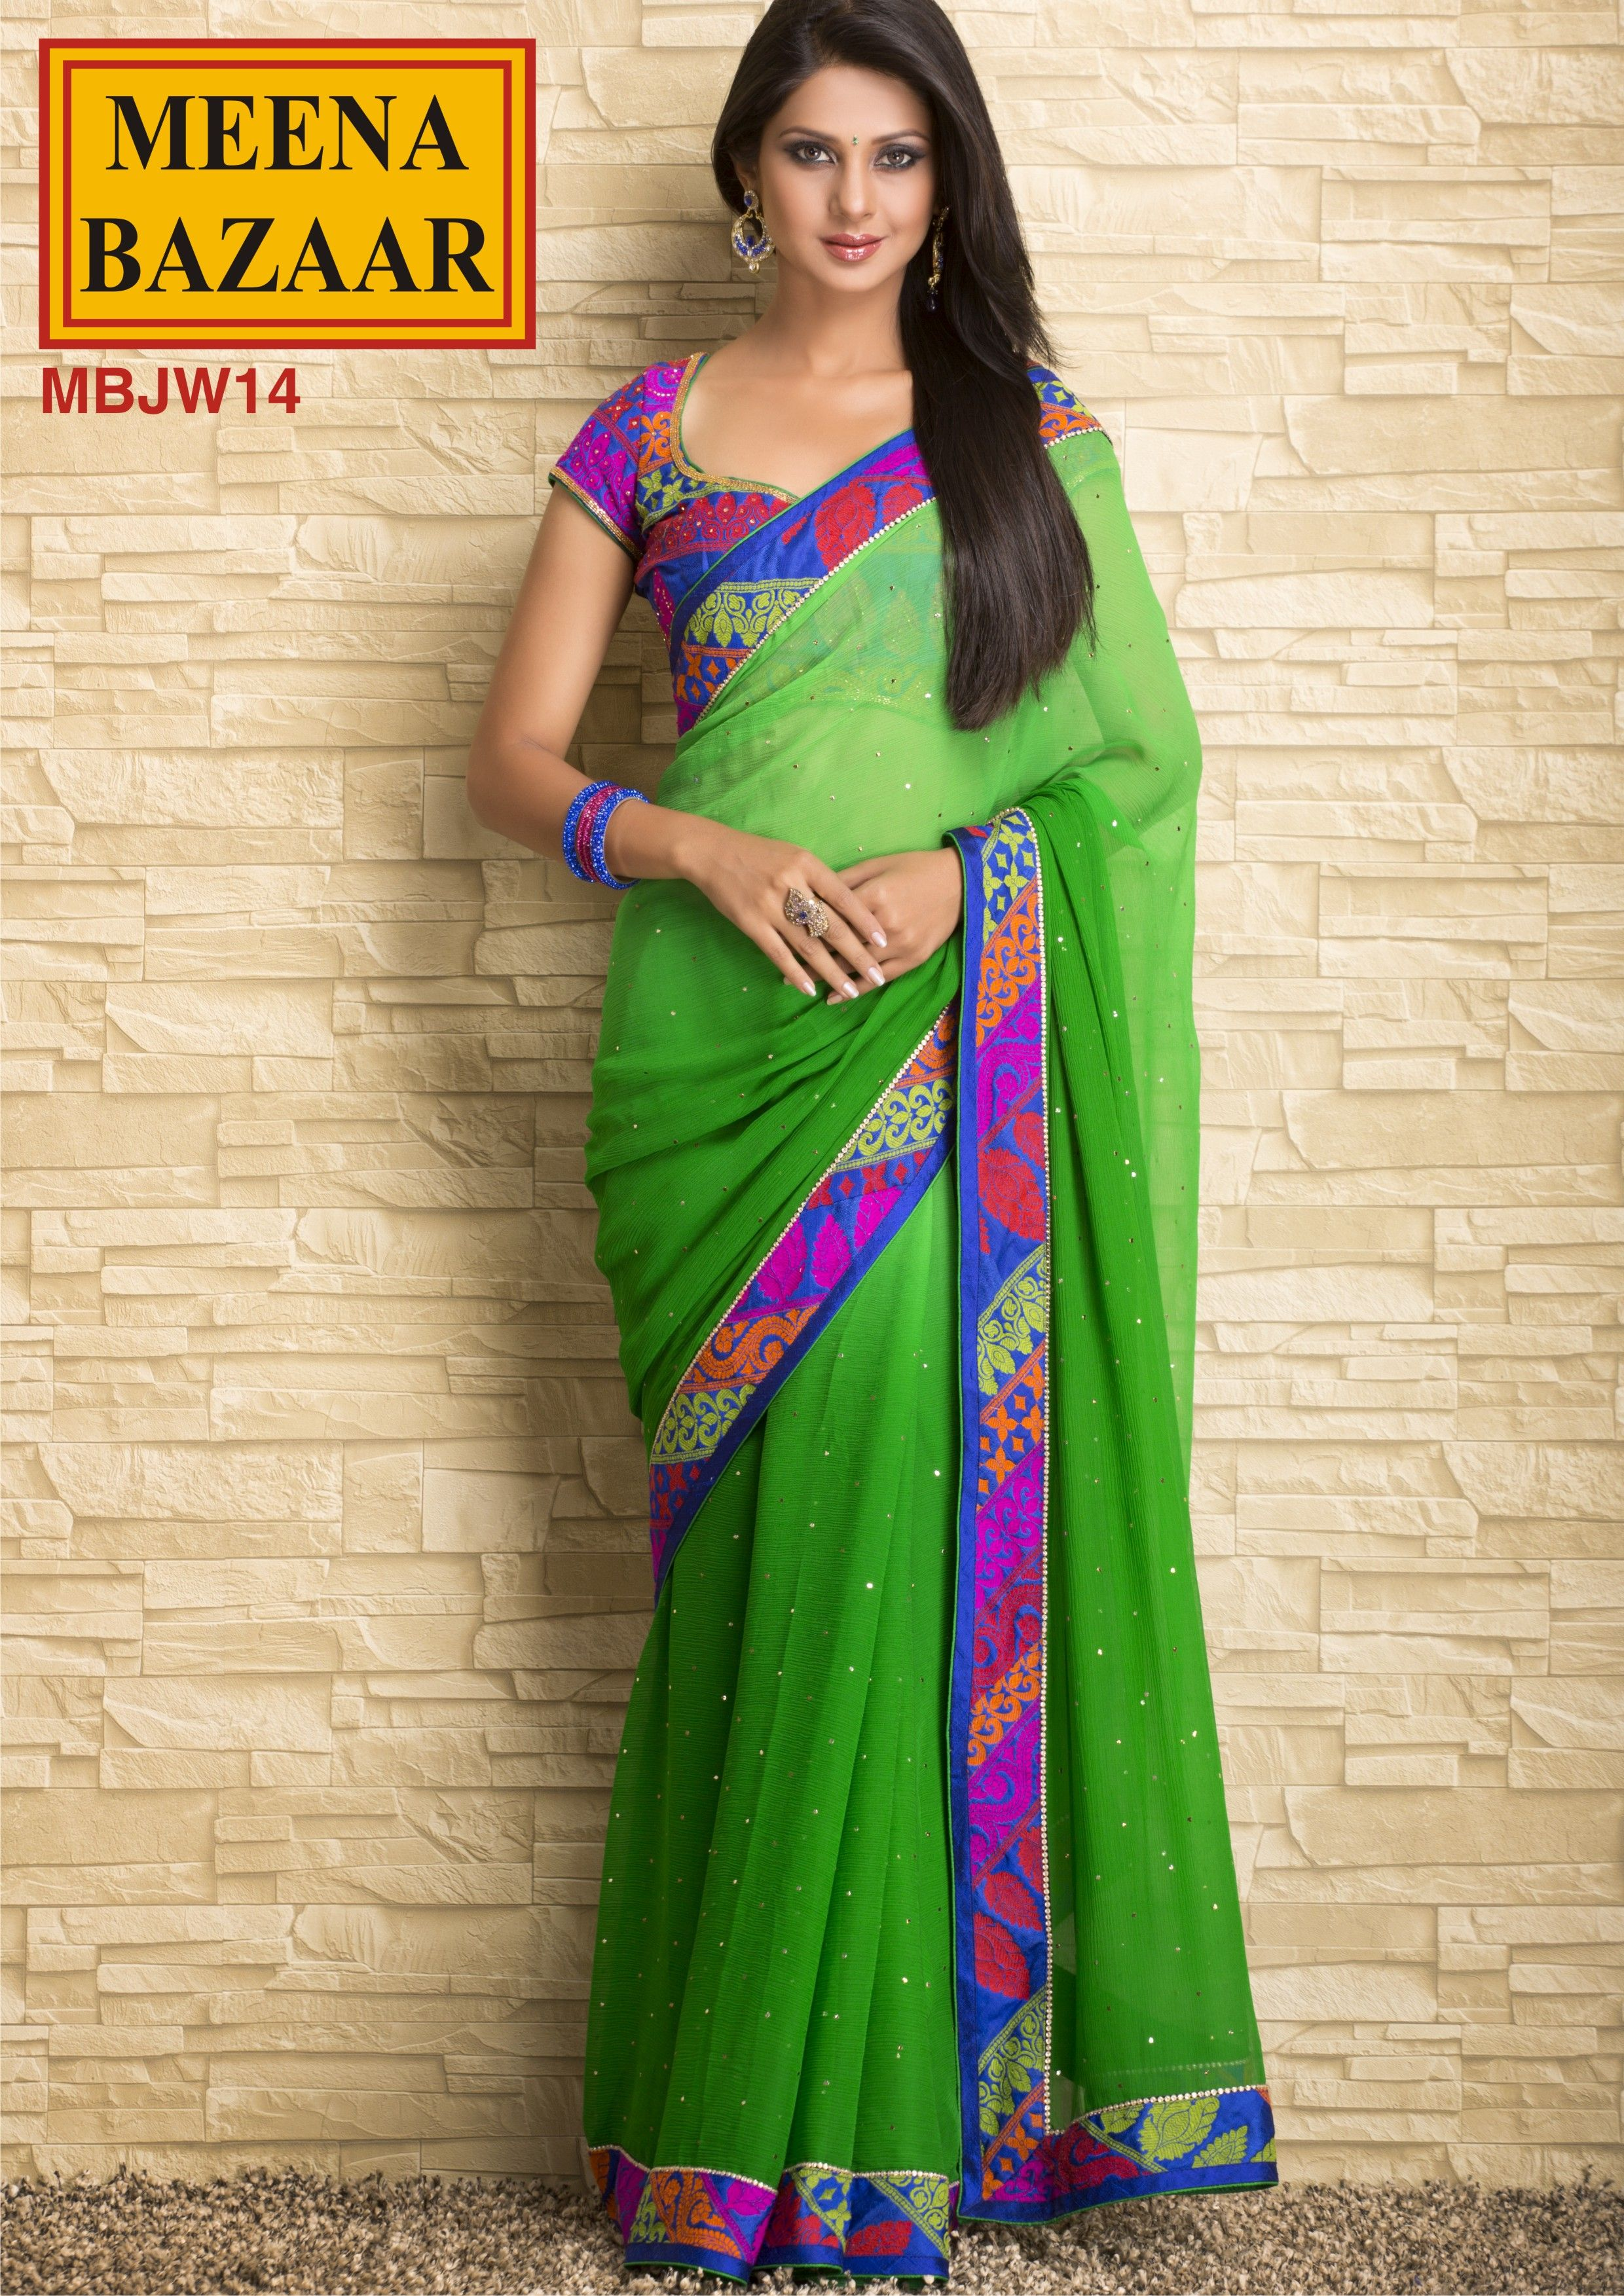 Mukaish work Saree on Chiffon Fabric with contrast Blouse by Meena Bazaar